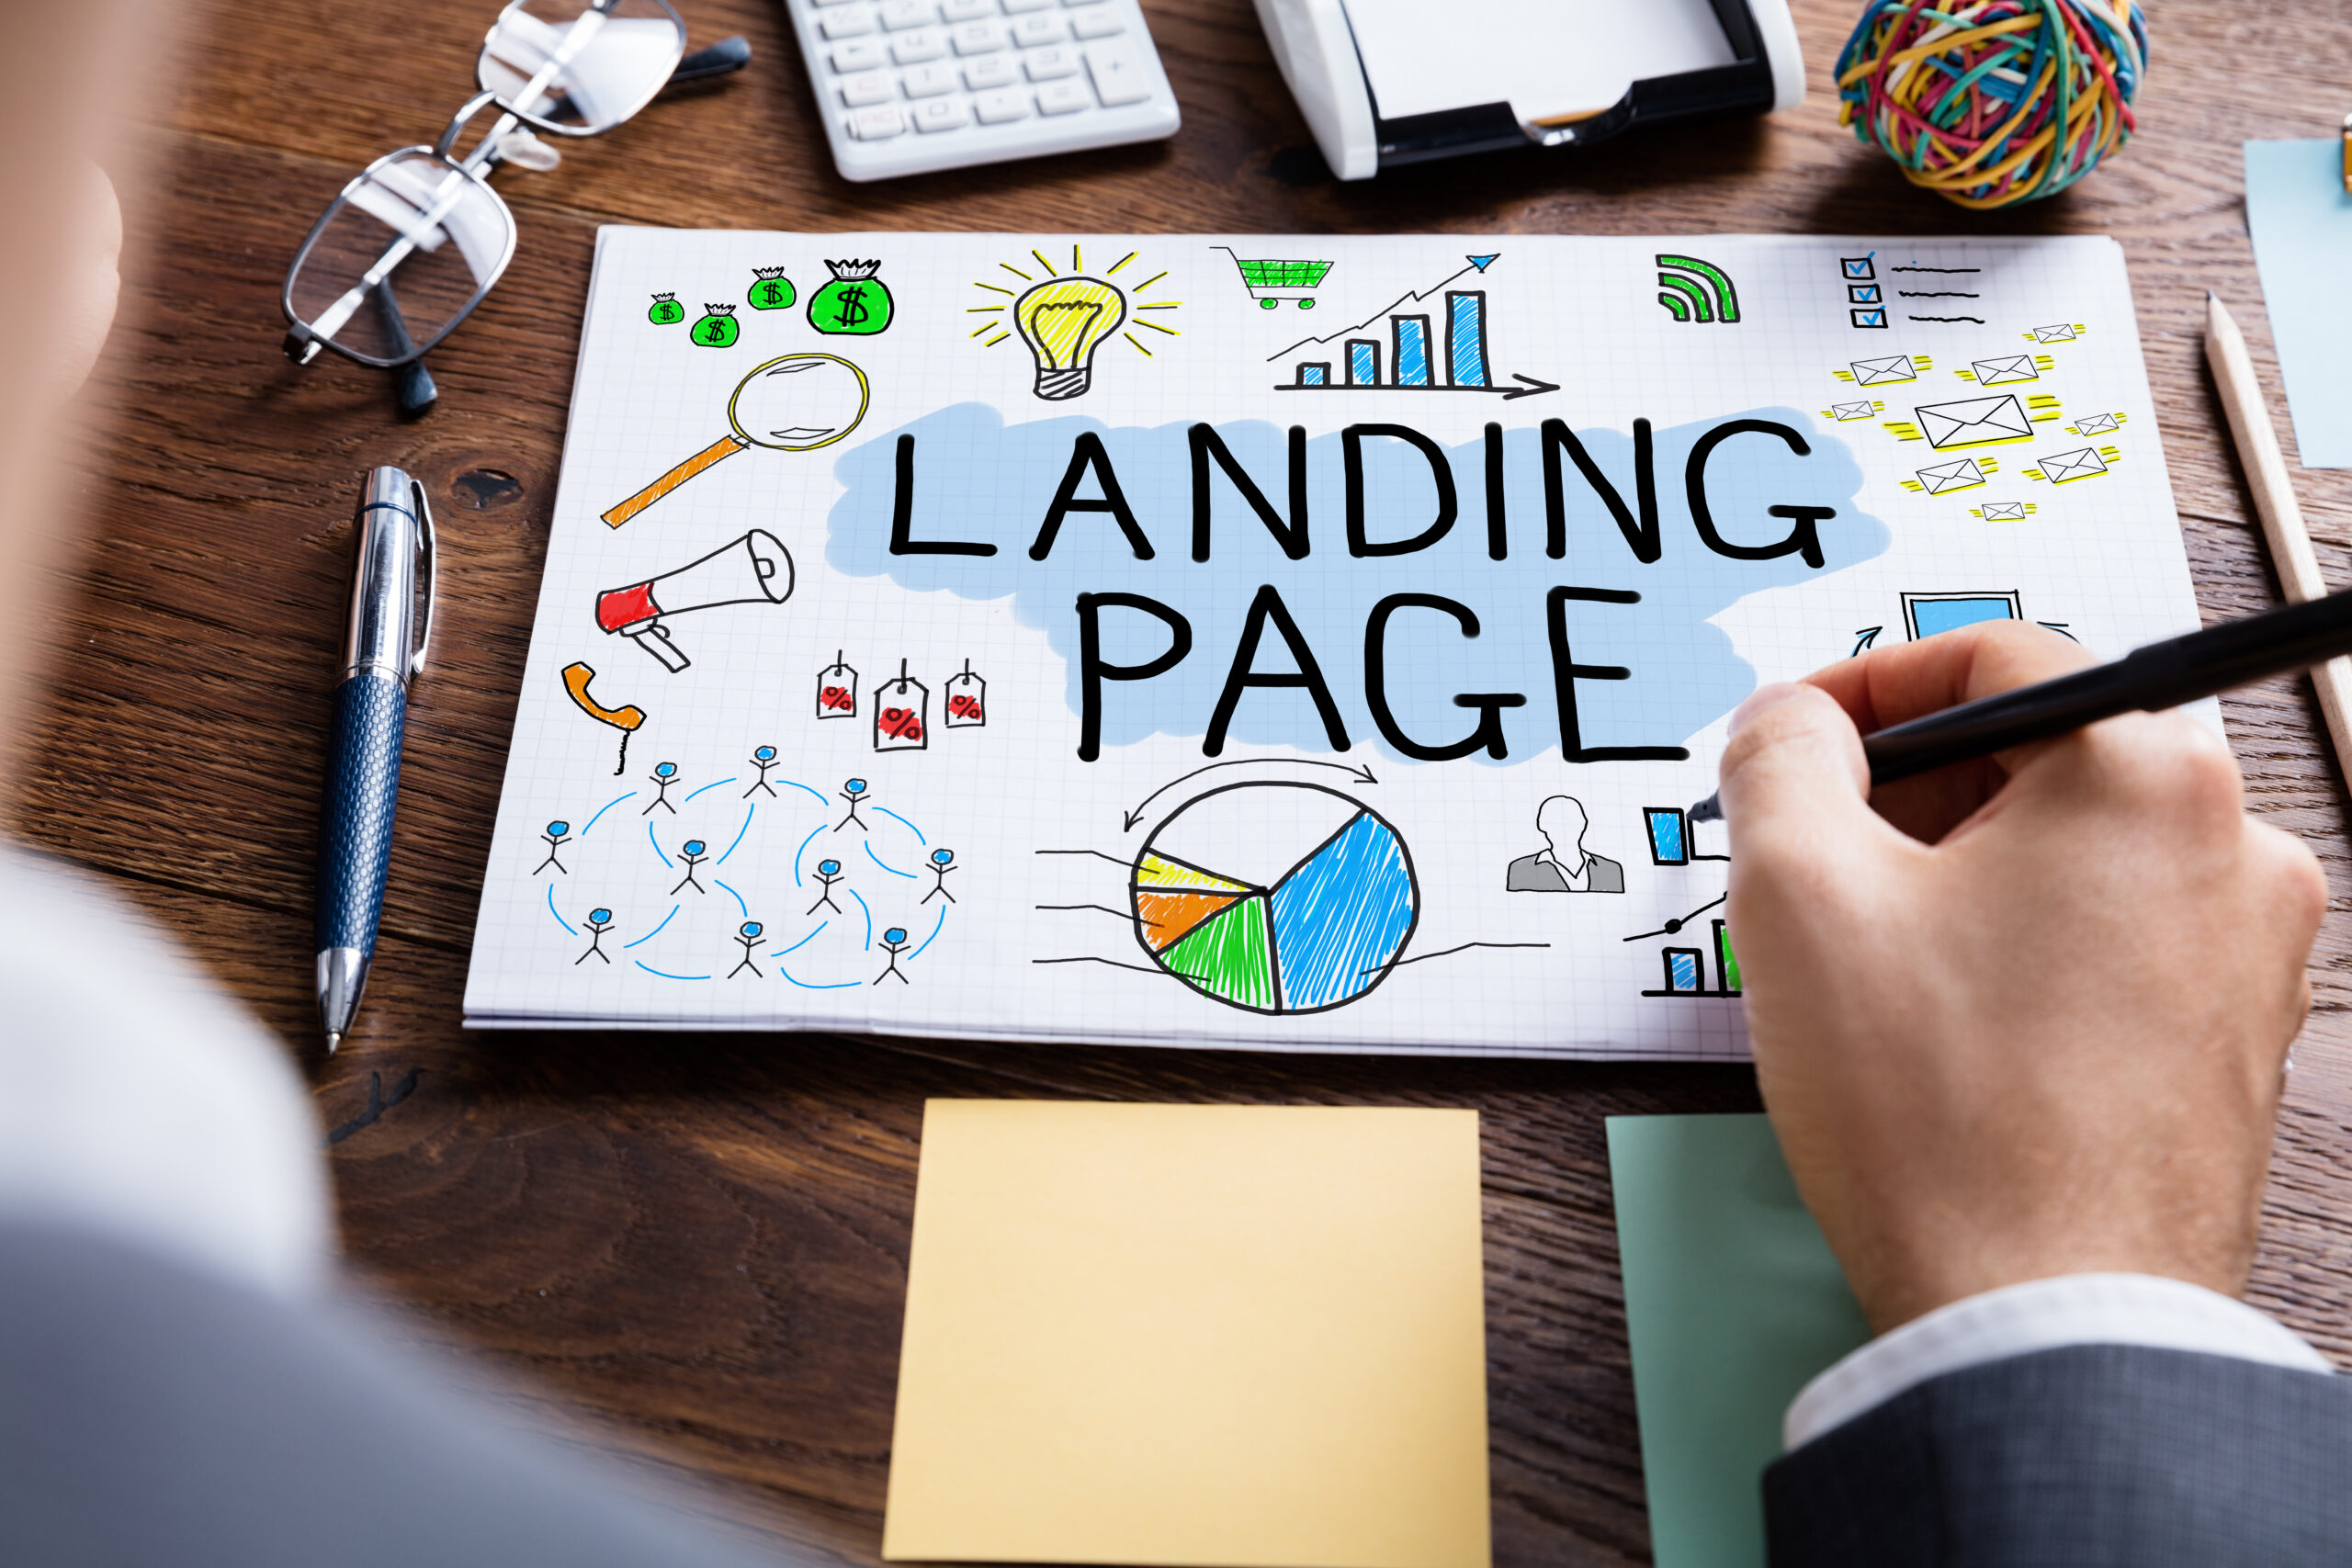 What is a Landing Page & Why is it Important?